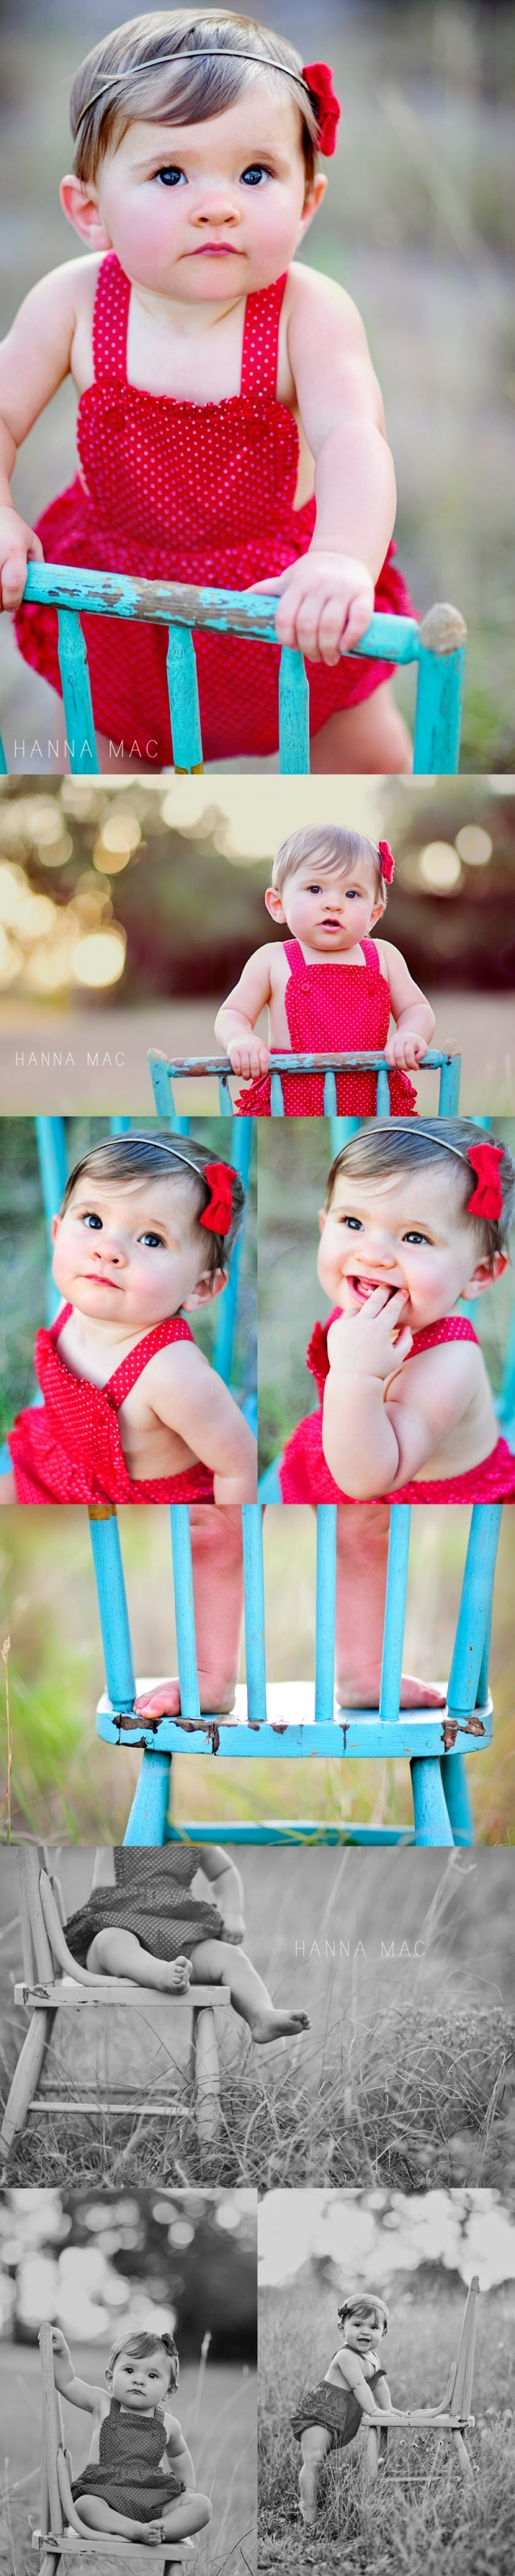 ToddlerChairs Props, Photos Ideas, 1 Year Photo Ideas, 1 Year Photos, Birthday Photos, Chairs Ideas, Baby Photos, First Birthday Pictures, Chairs Pics